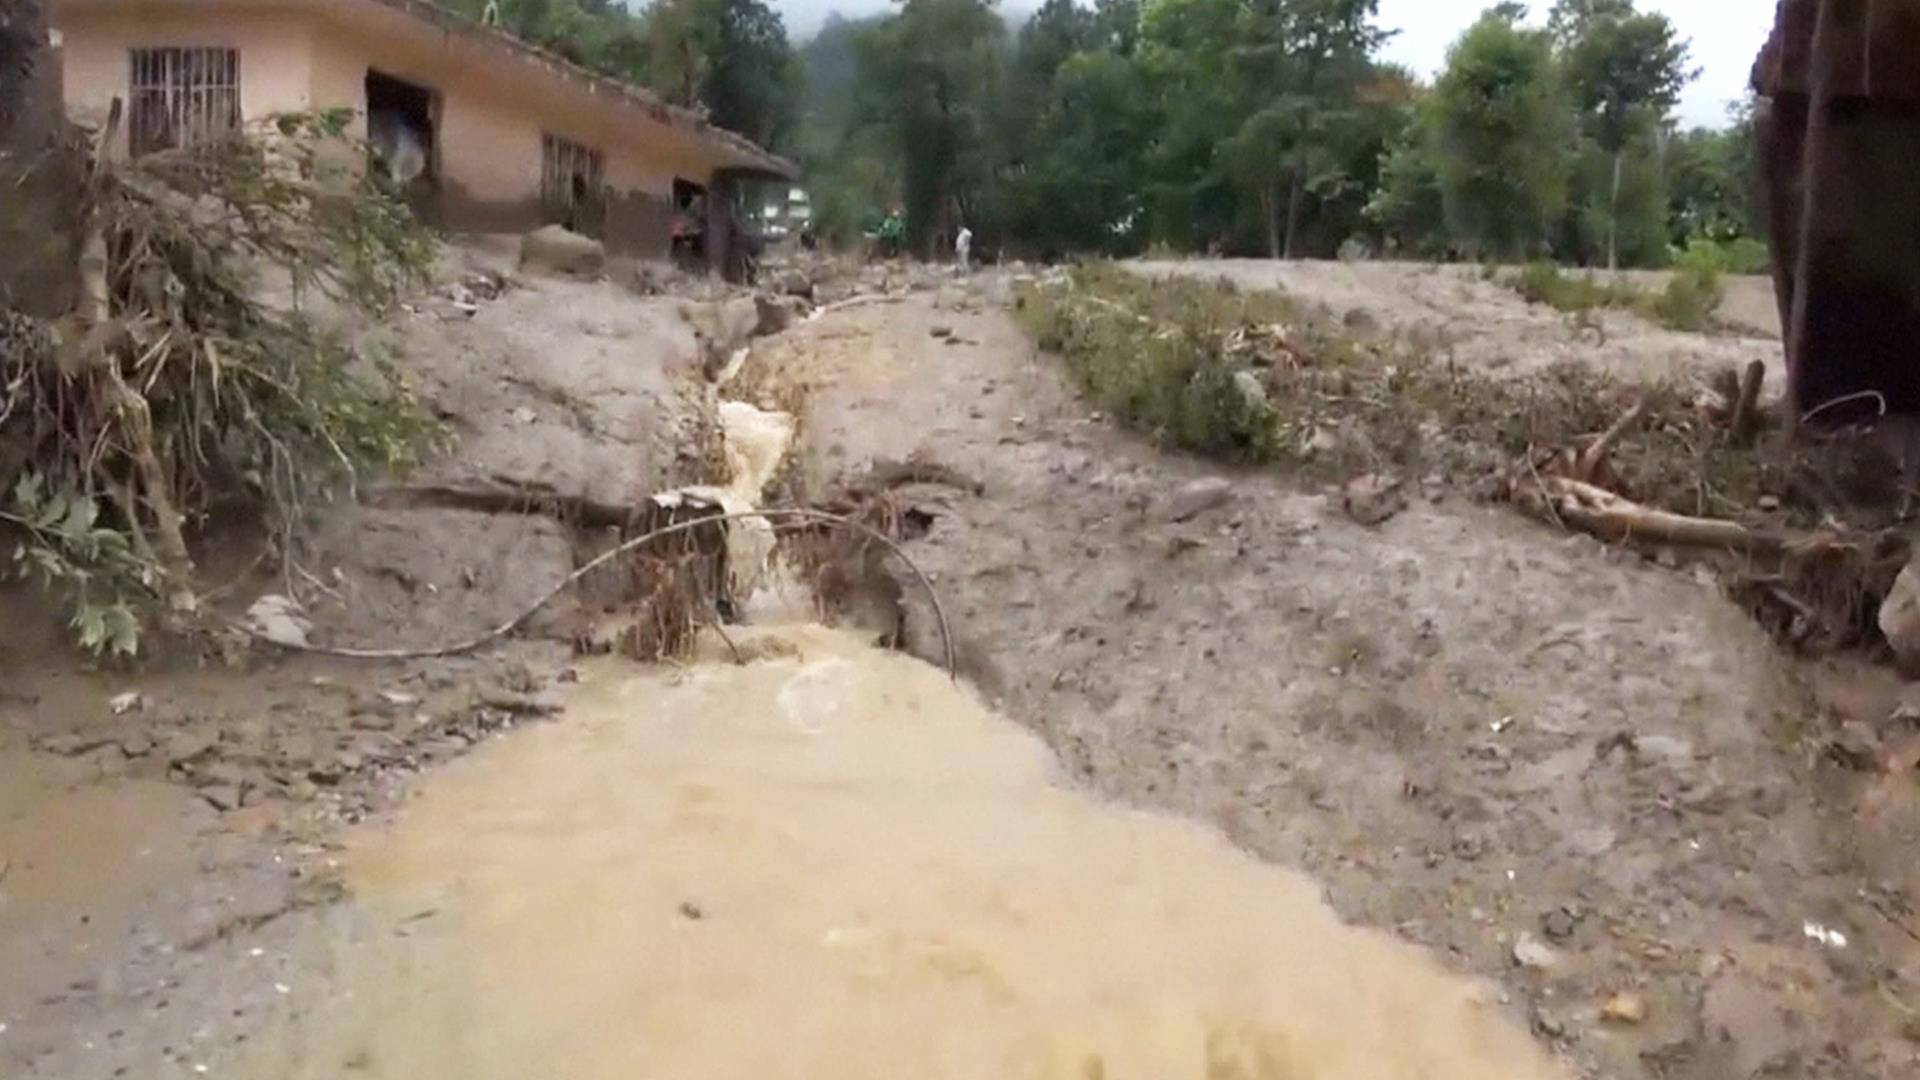 Deadly Mudslides Triggered by Tropical Storm Earl in Mexico